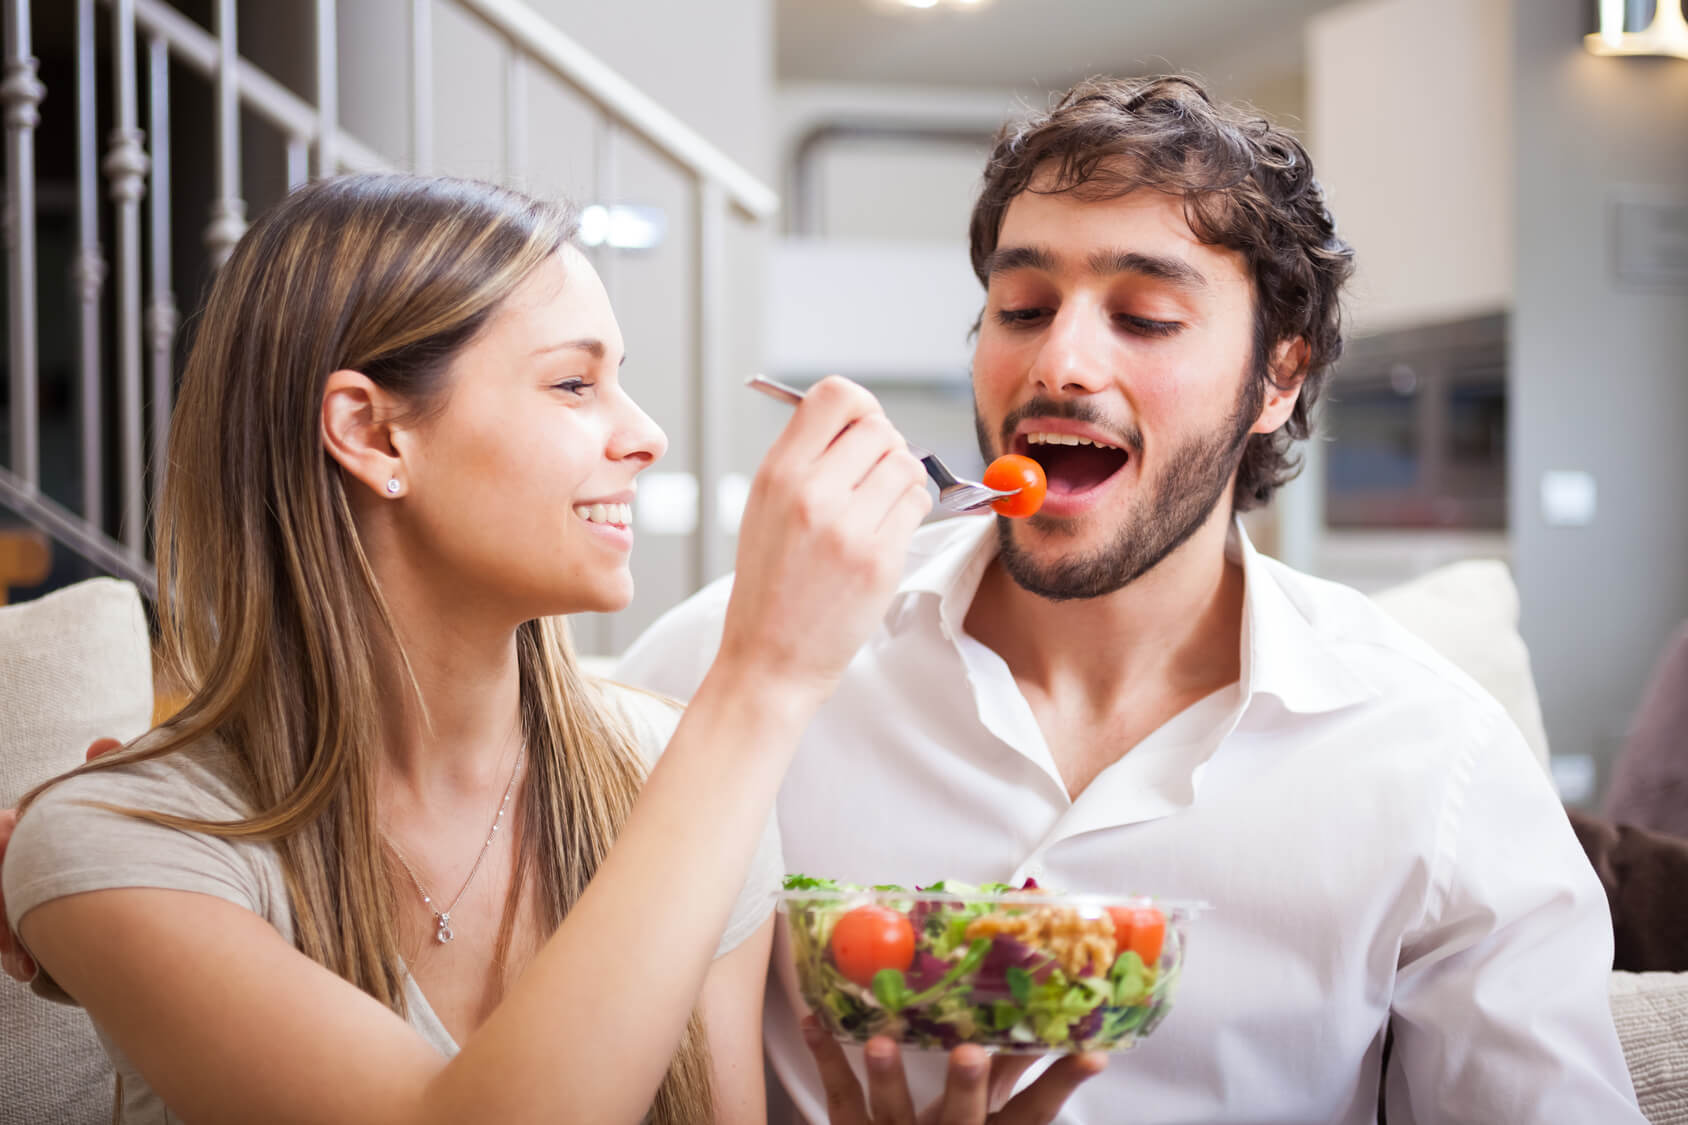 Couple eating a salad in the living room